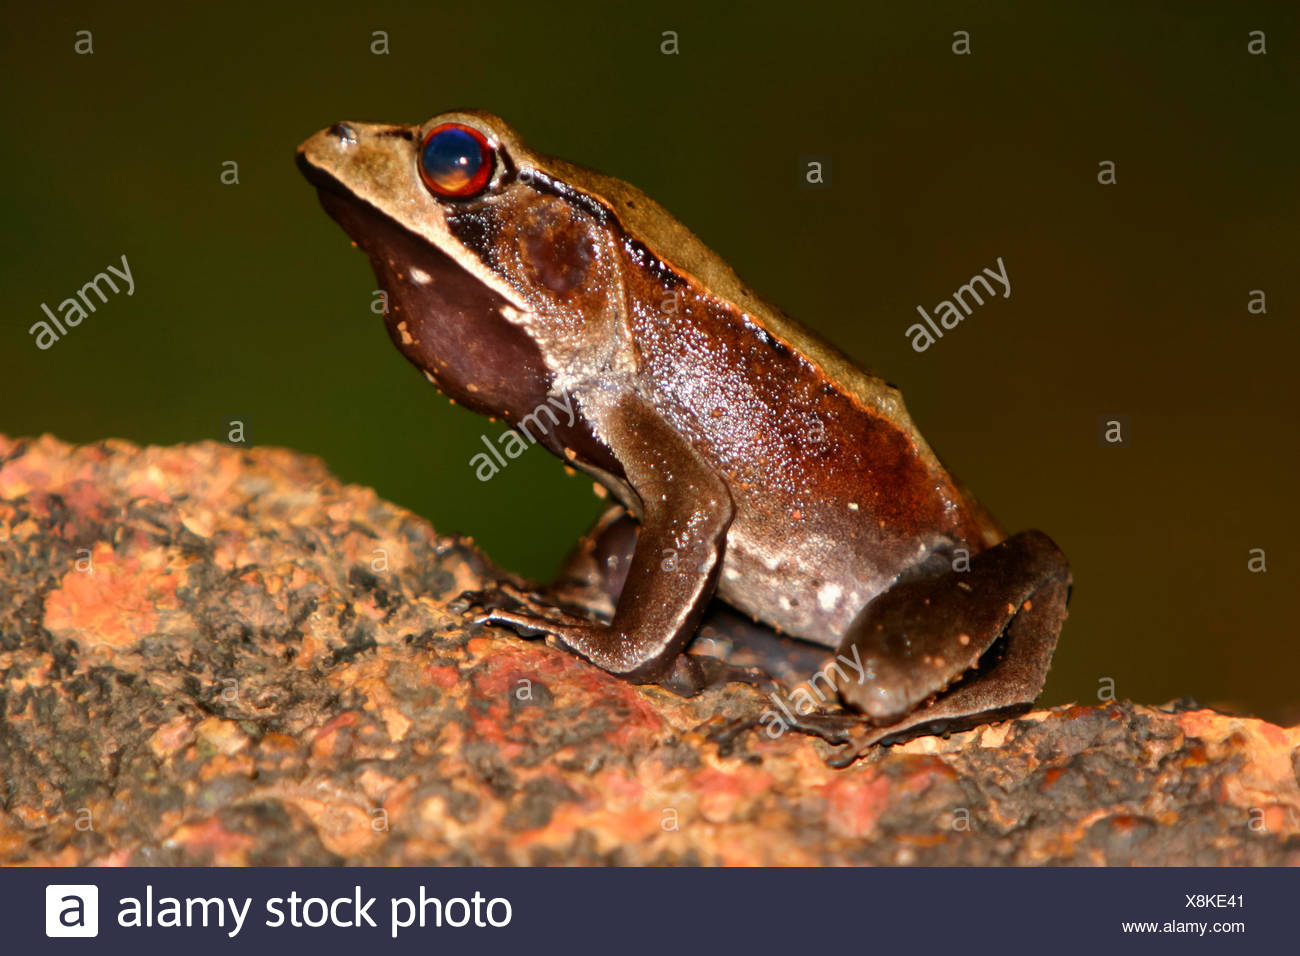 Bicolored Frog Clinotarsus curtipes  (Rana curticeps) Stock Photo